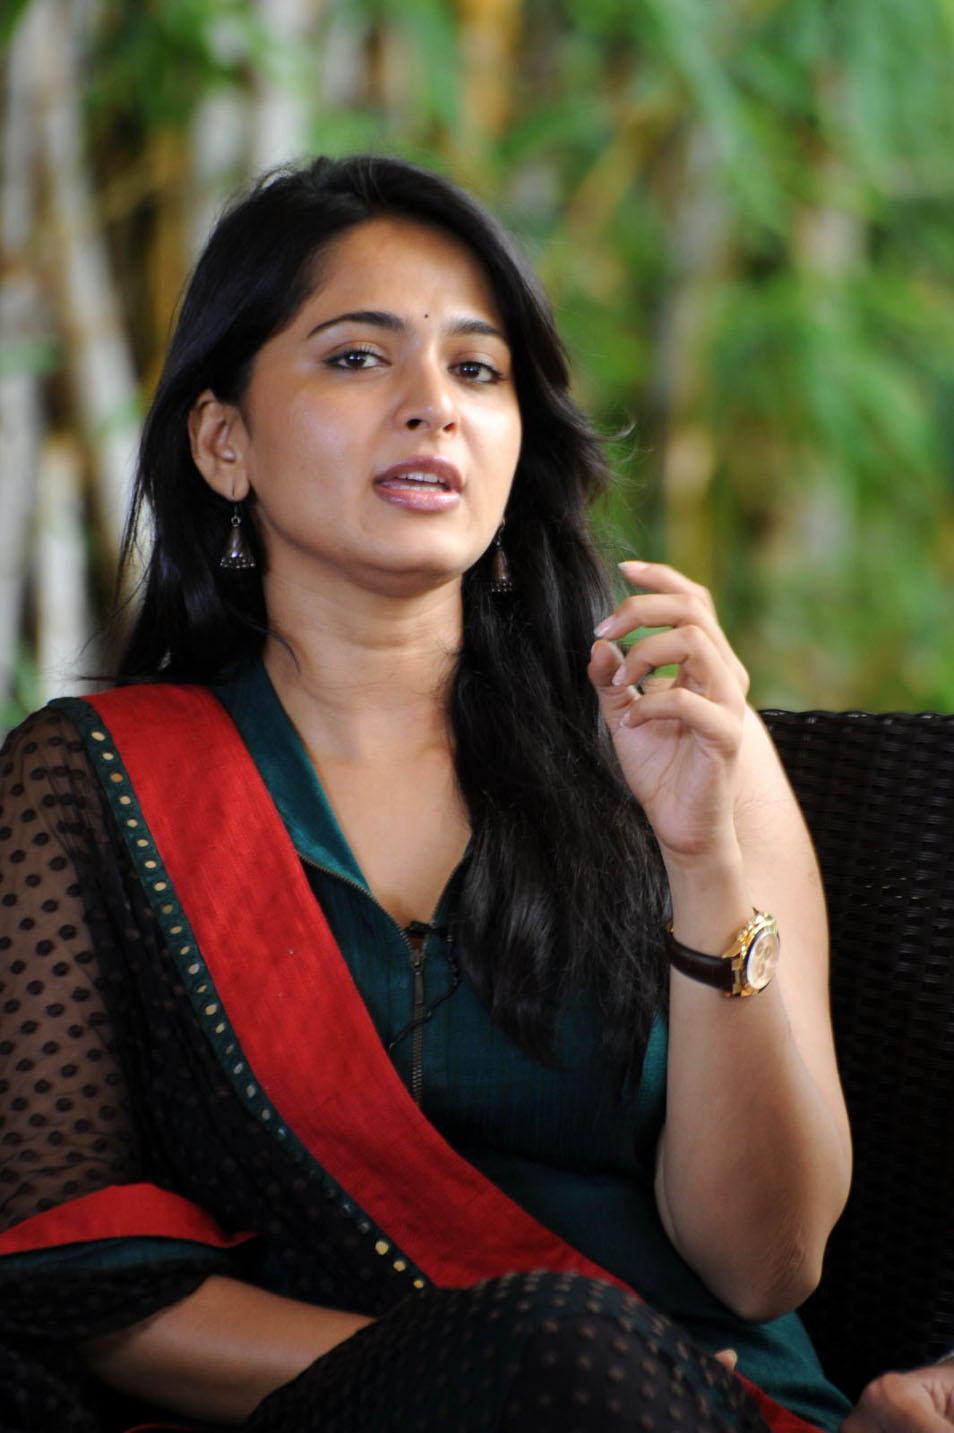 Anushka images without dress